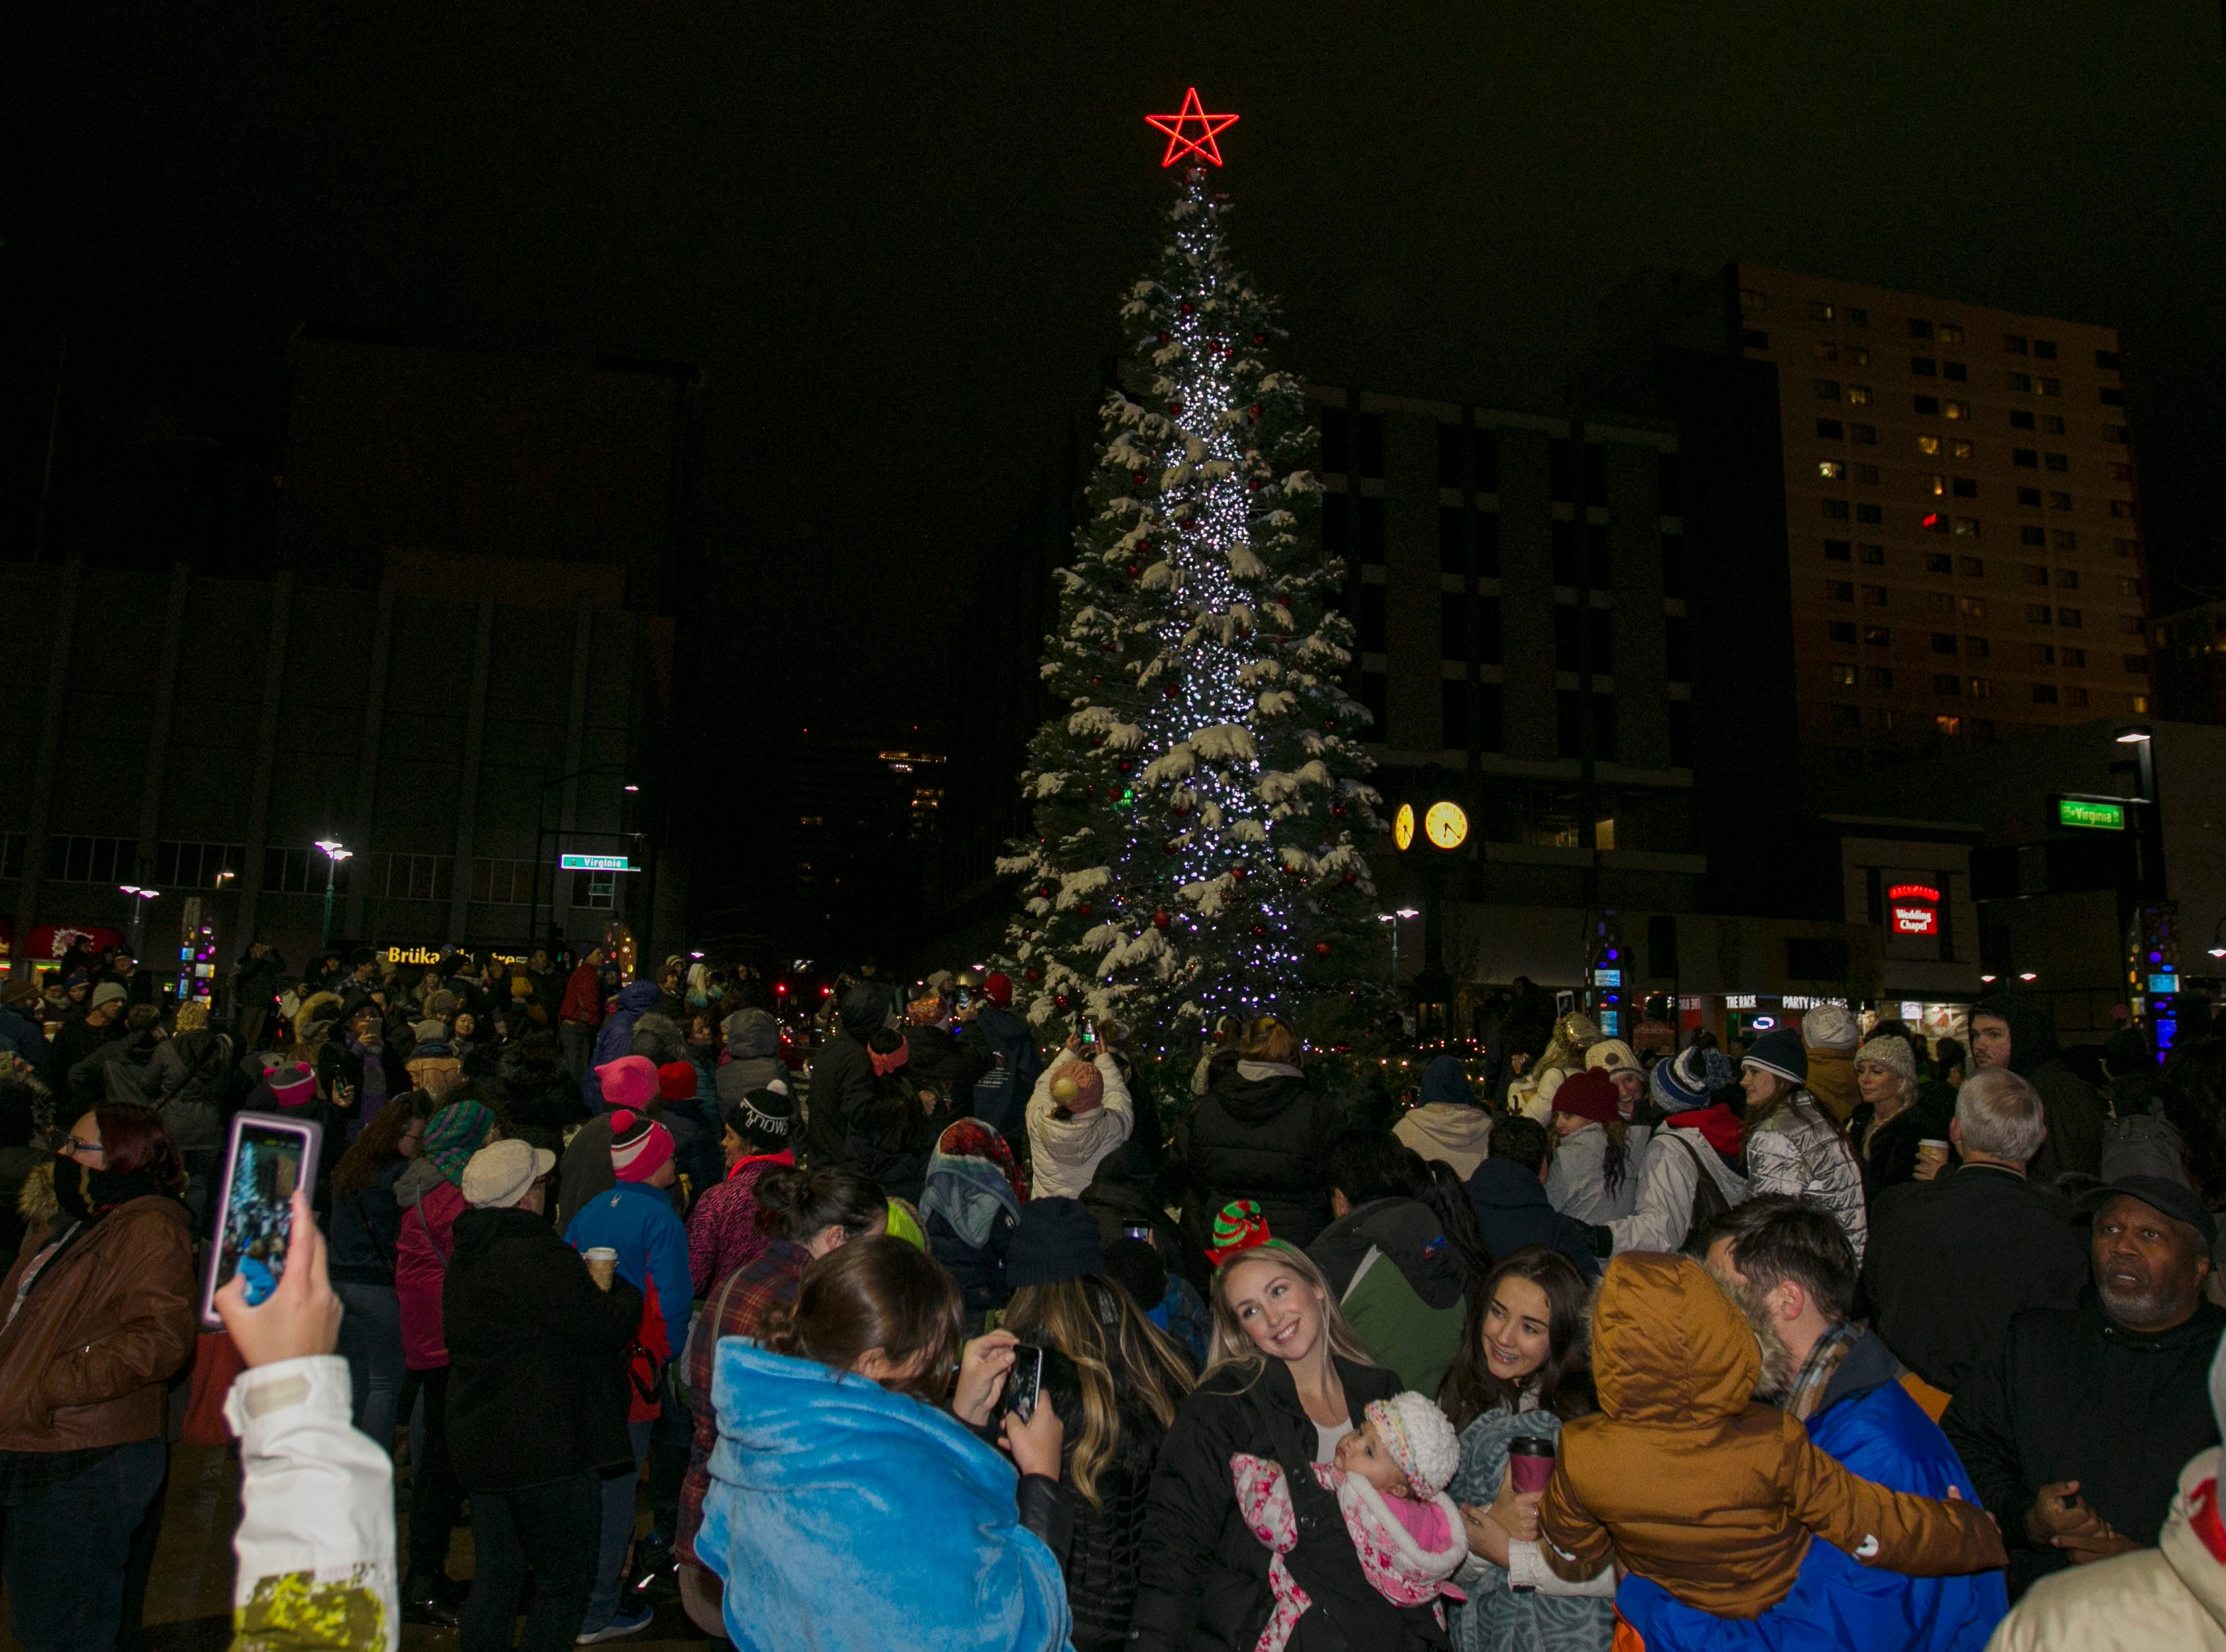 Photos from the City of Reno Tree Lighting at City Plaza in downtown Reno. After the tree lighting ceremony people walked to Greater Nevada Field led by Reno Aces mascot Archie and Reno 1868 FC mascot Truckee for a free community skate on Wednesday, December 5, 2018.